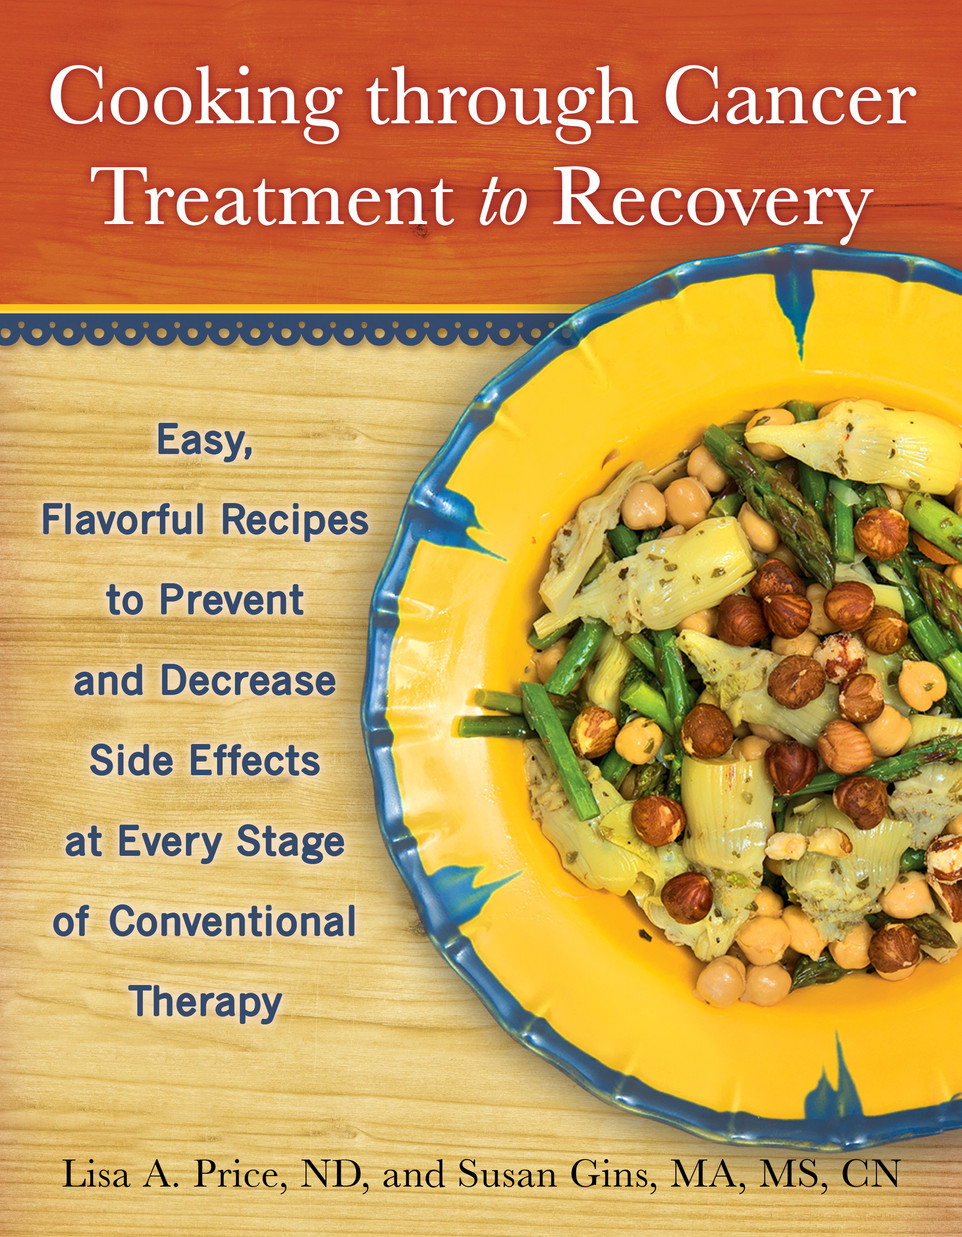 Cooking through Cancer Treatment to Recovery (Demos Health Publishing, Inc.)